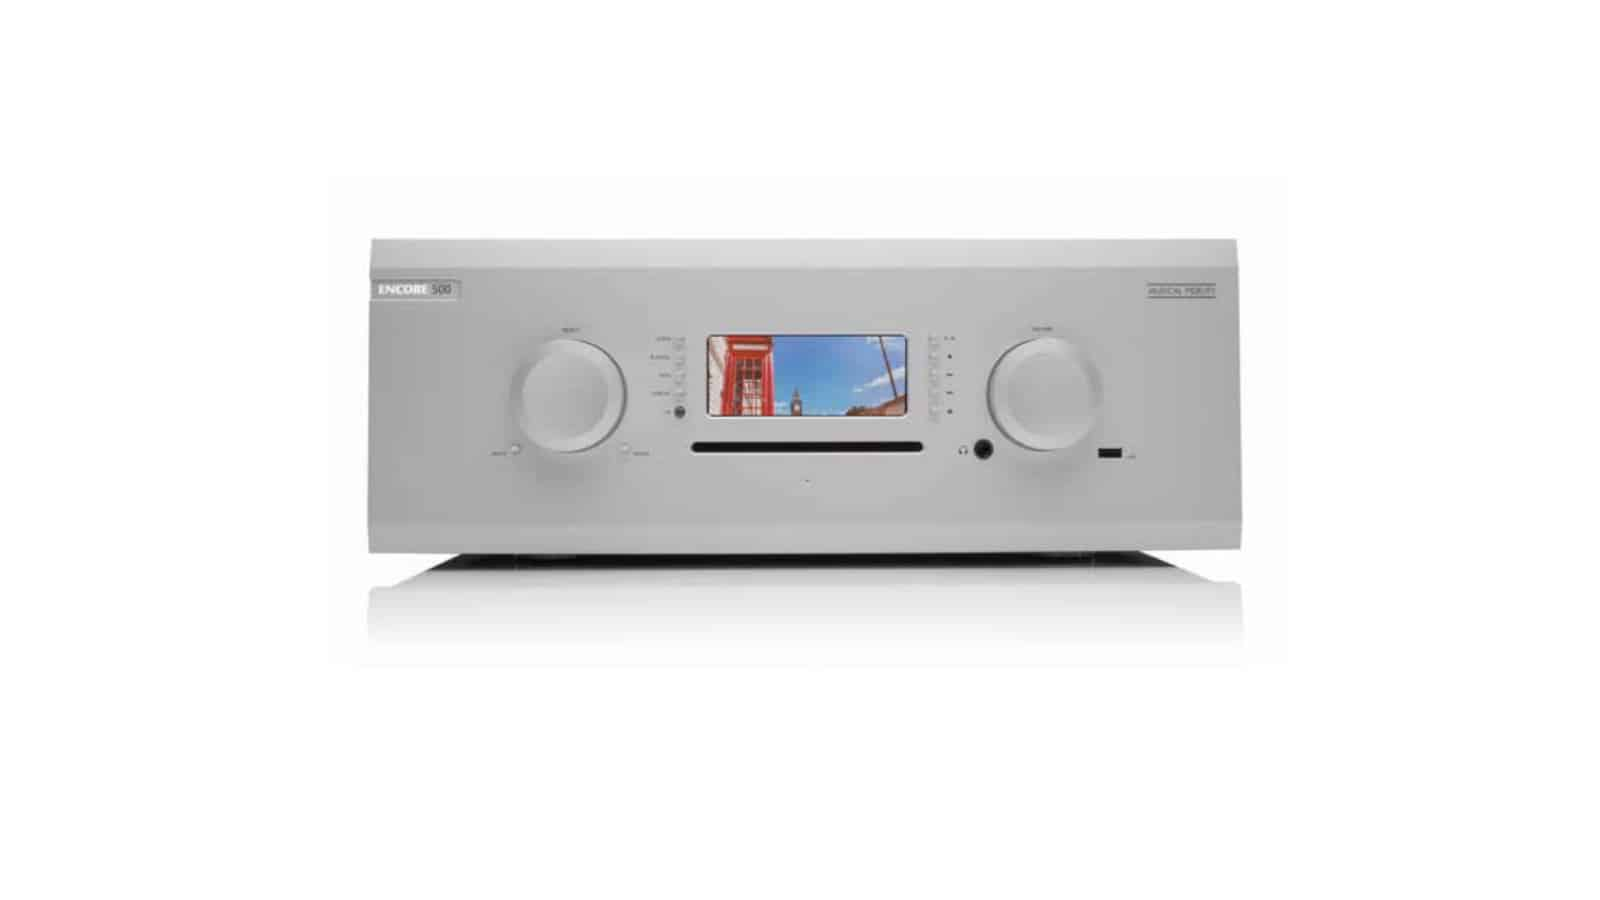 musical-fidelity-m8-encore-500-streaming-music-system